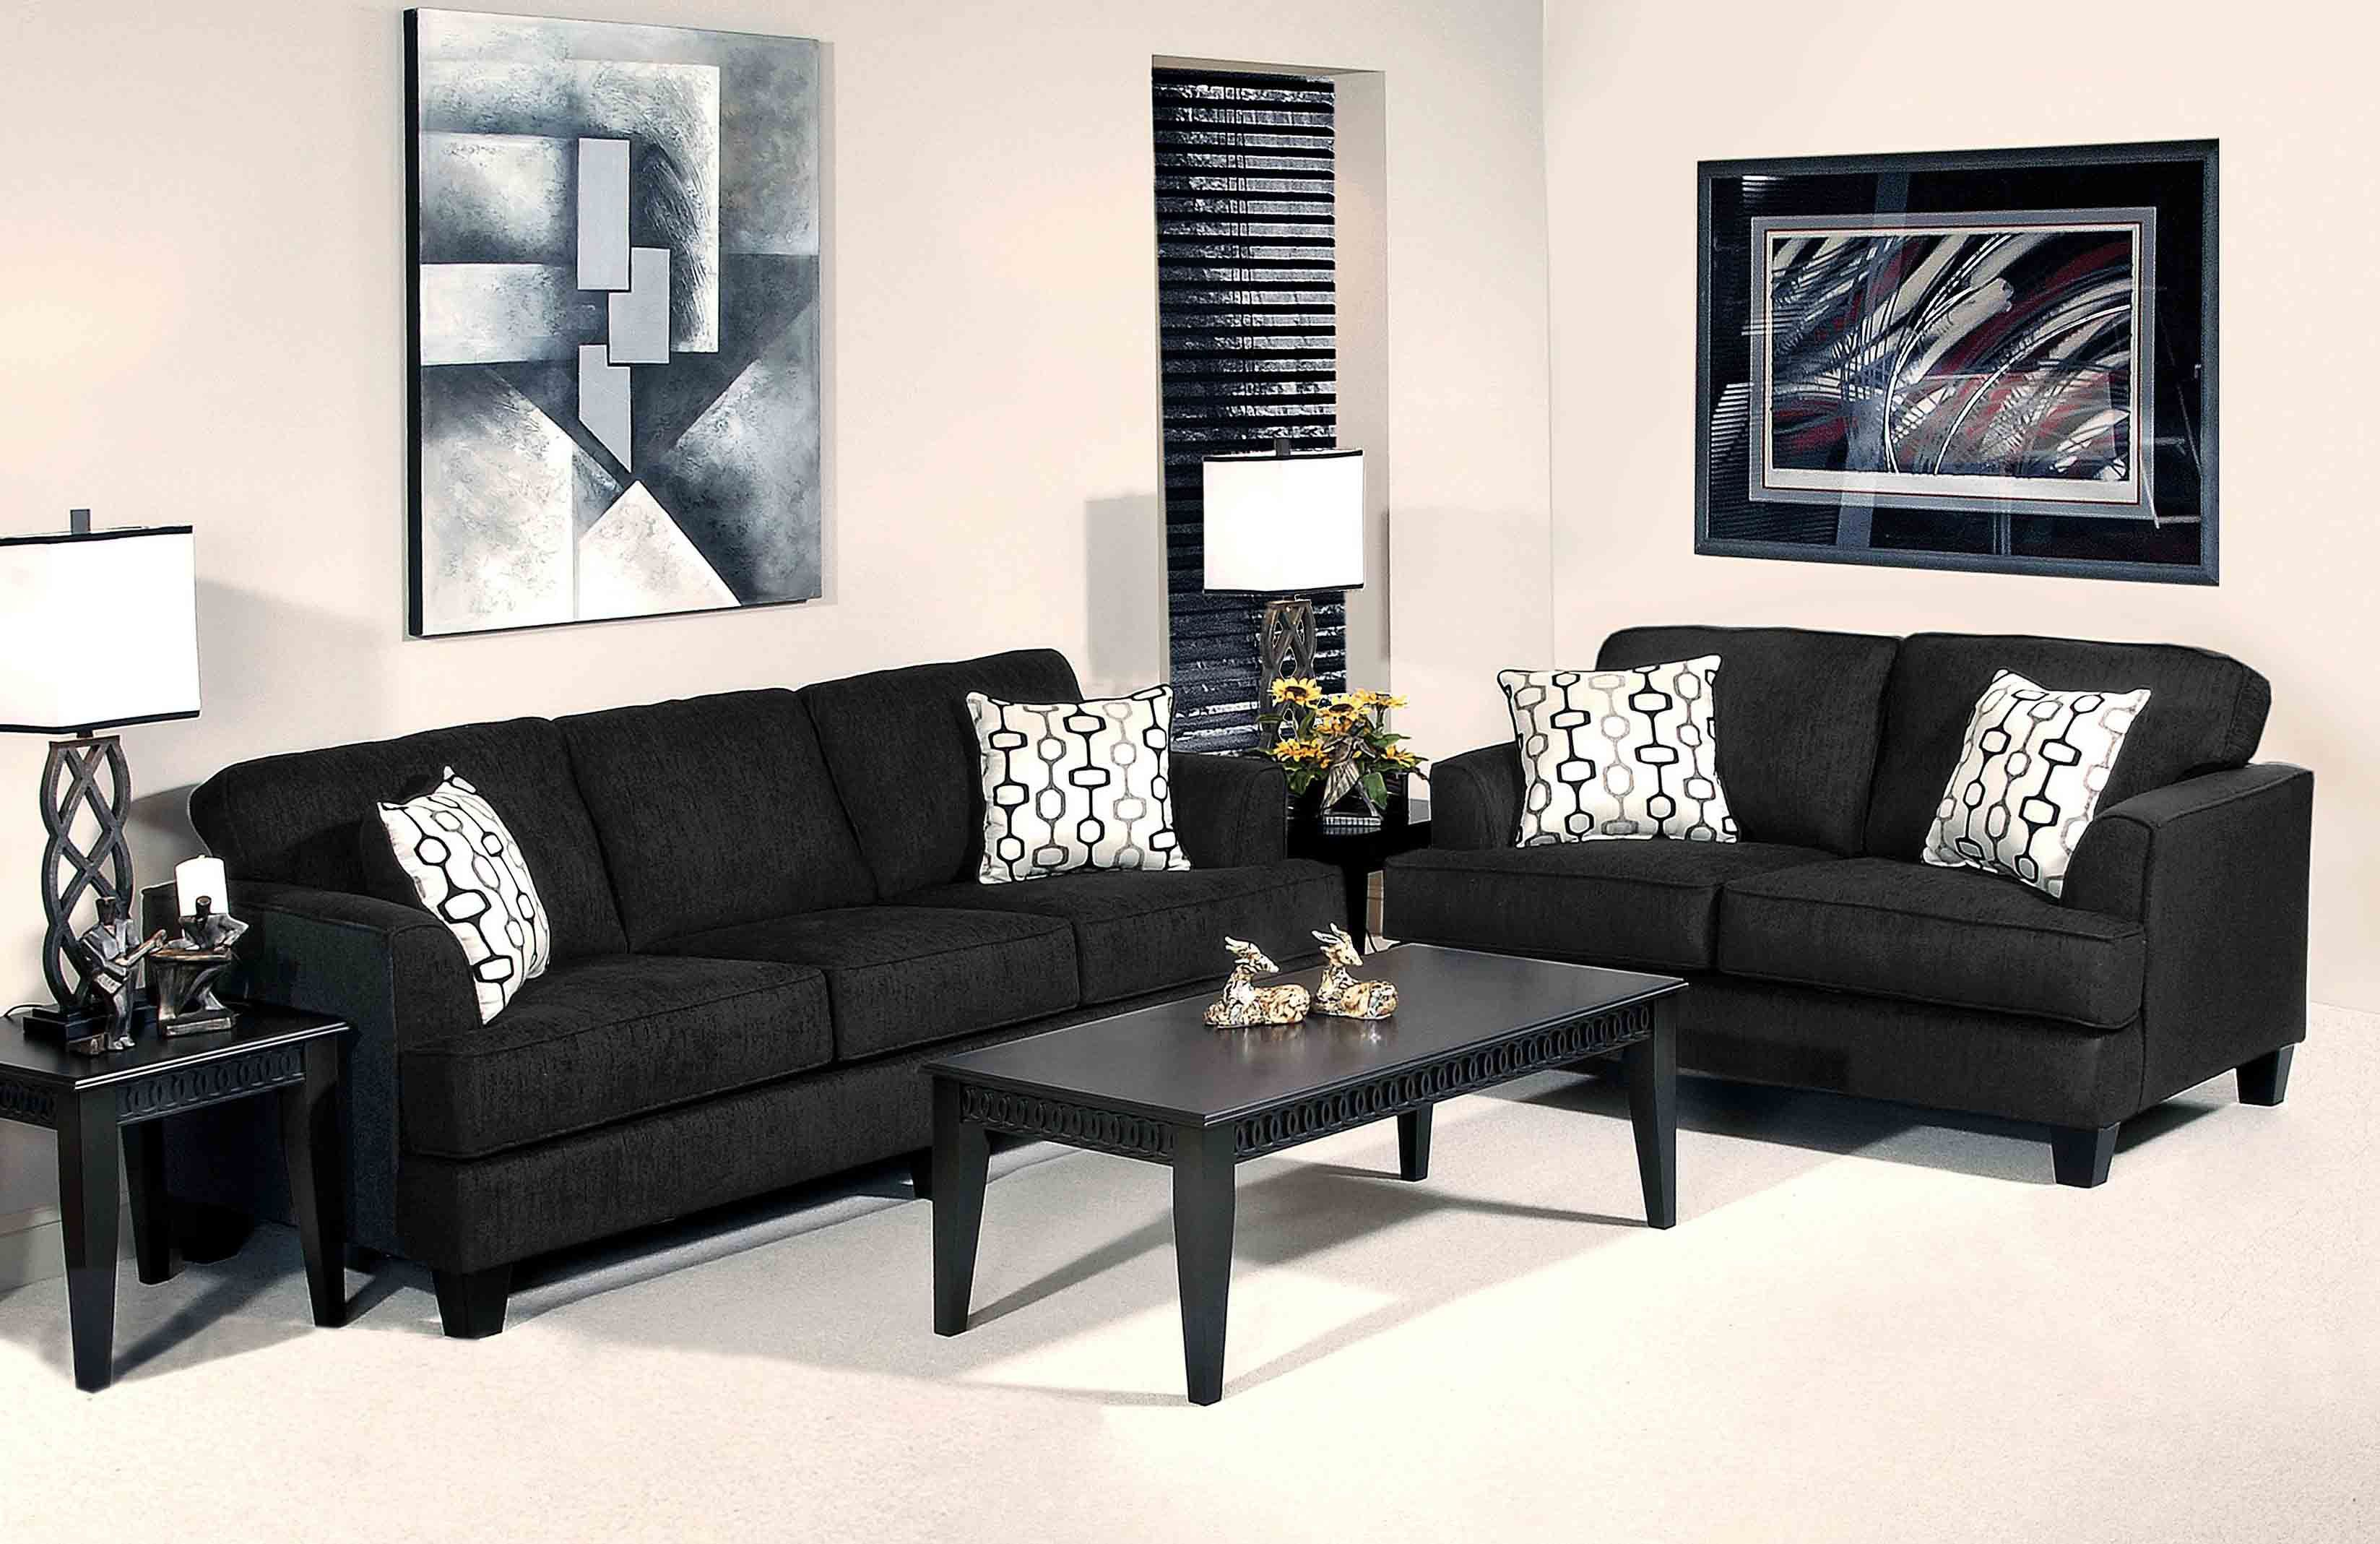 Pin By Selbicconsult On Sectional Sofa Pinterest Sofa Furniture